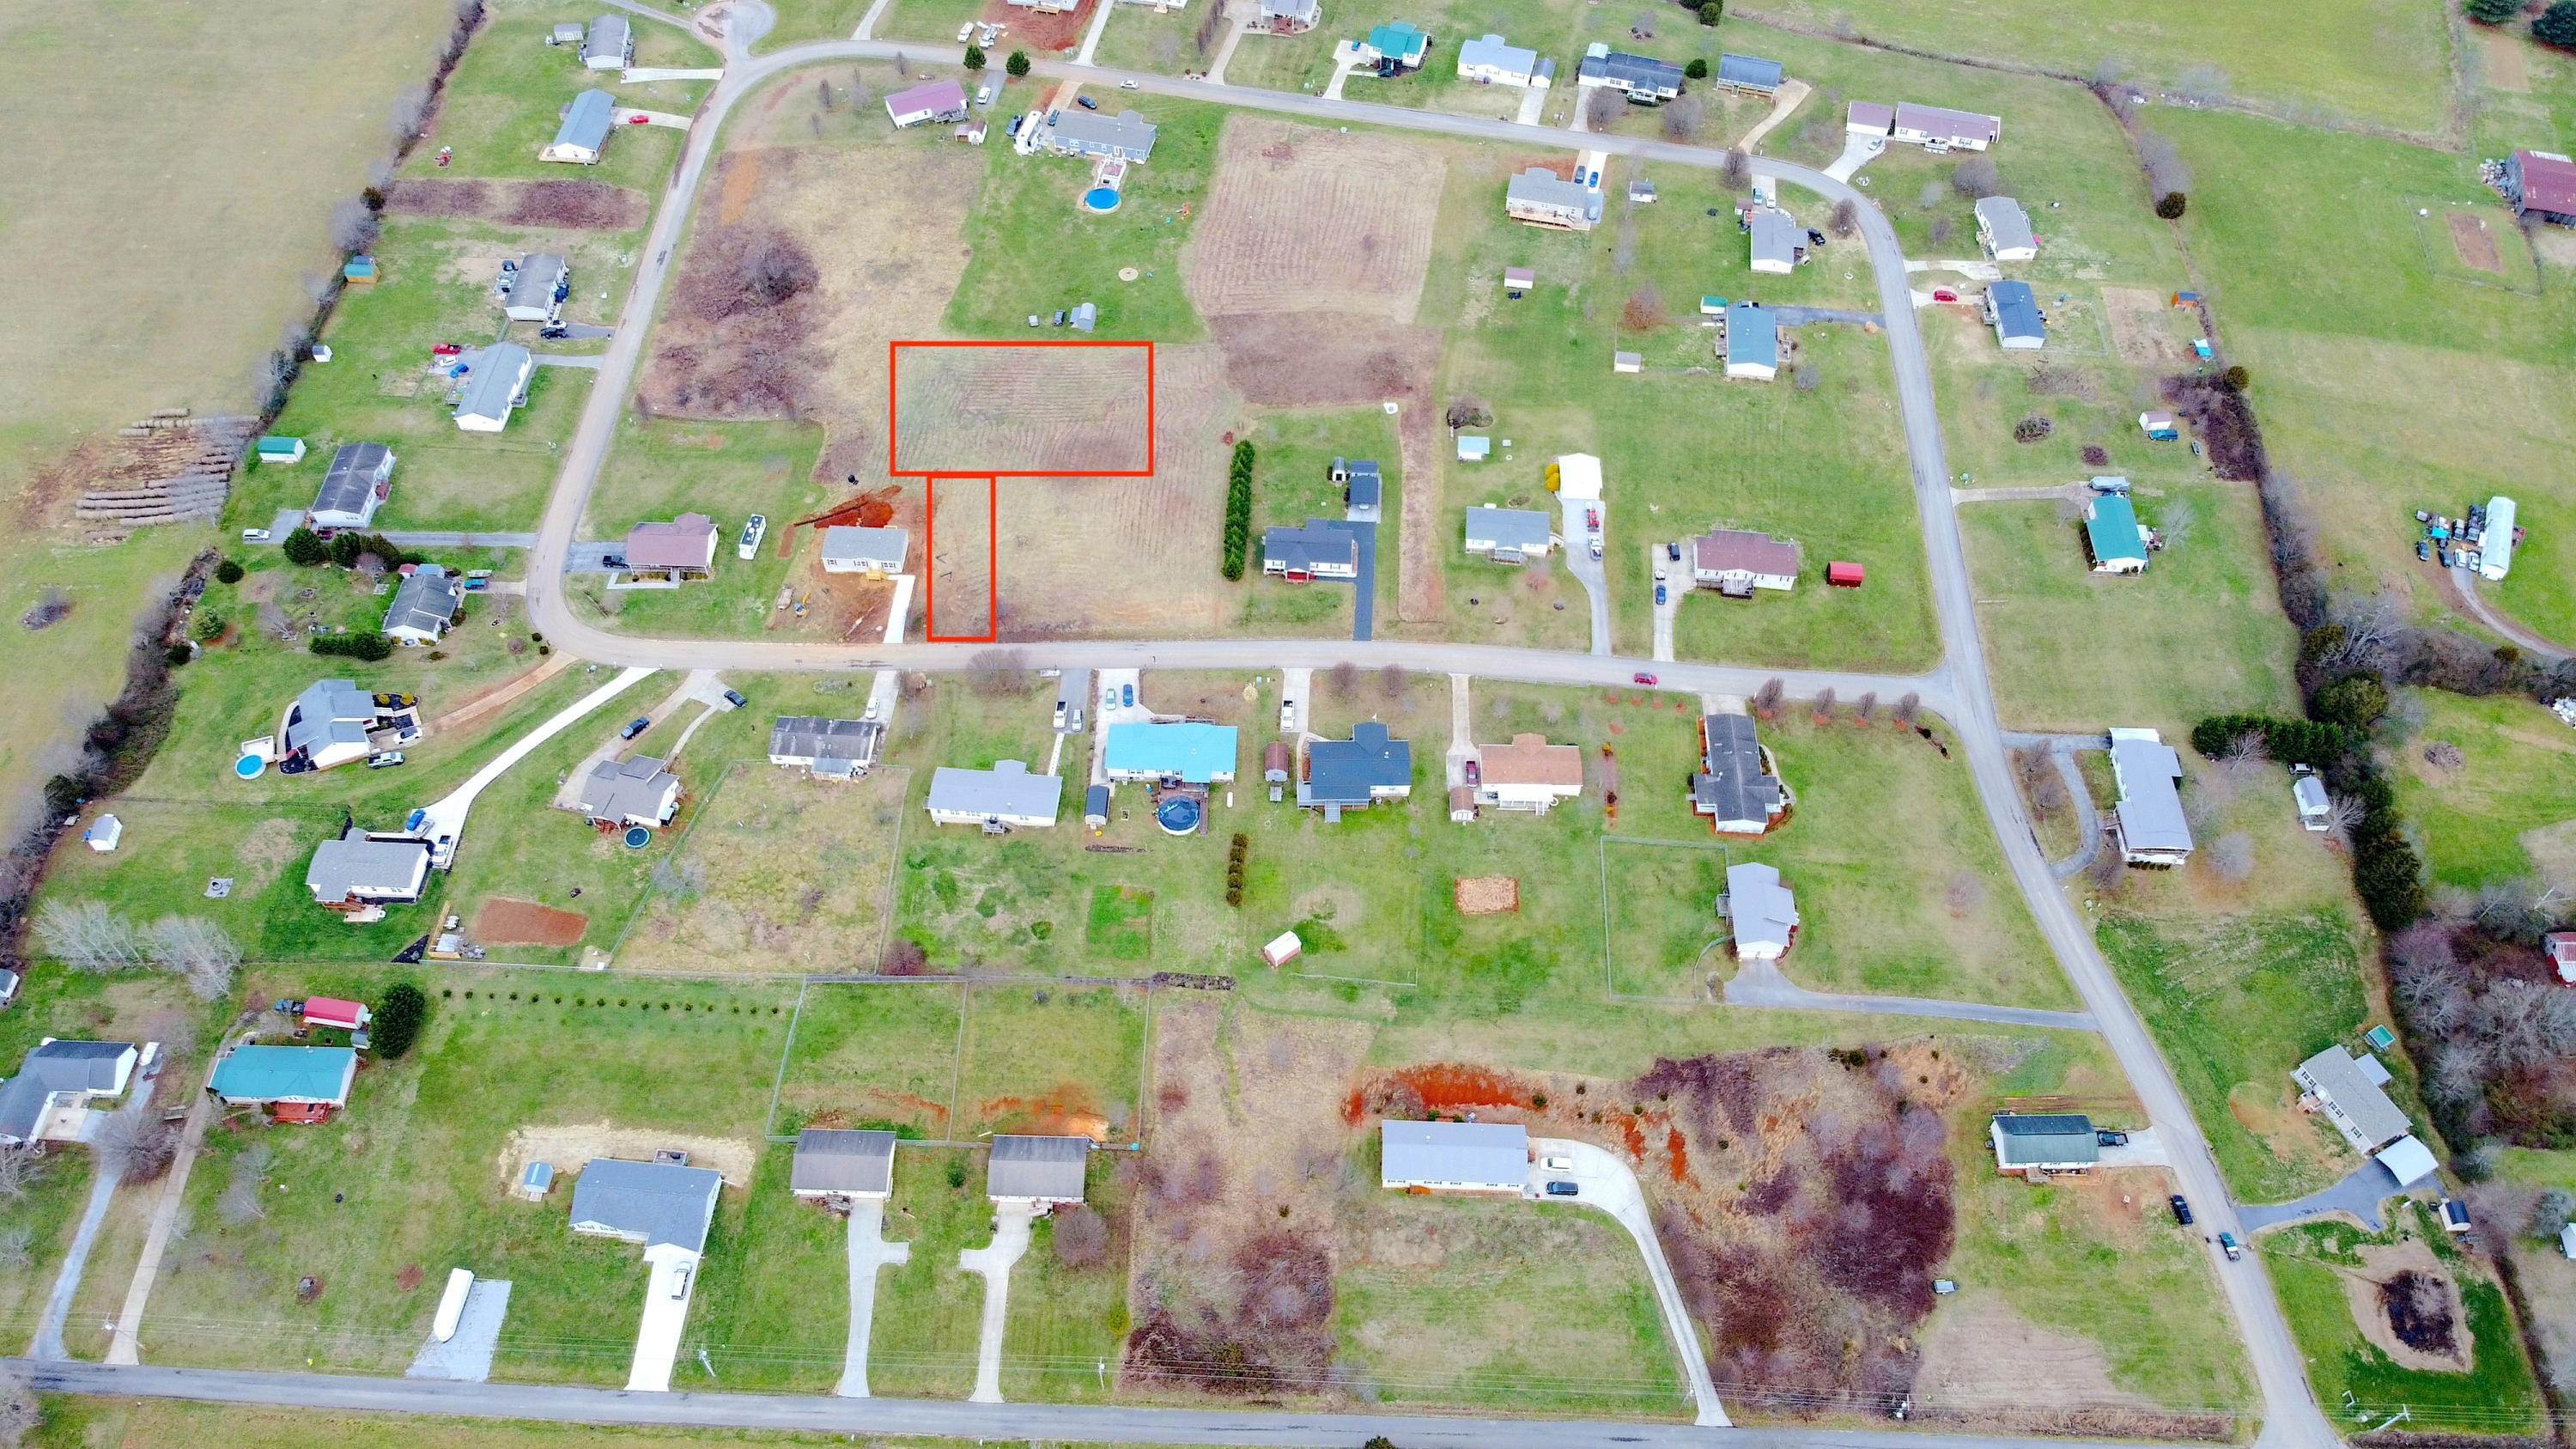 Terreno por un Venta en Ebenezer Loop Lot 64 Chuckey, Tennessee 37641 Estados Unidos